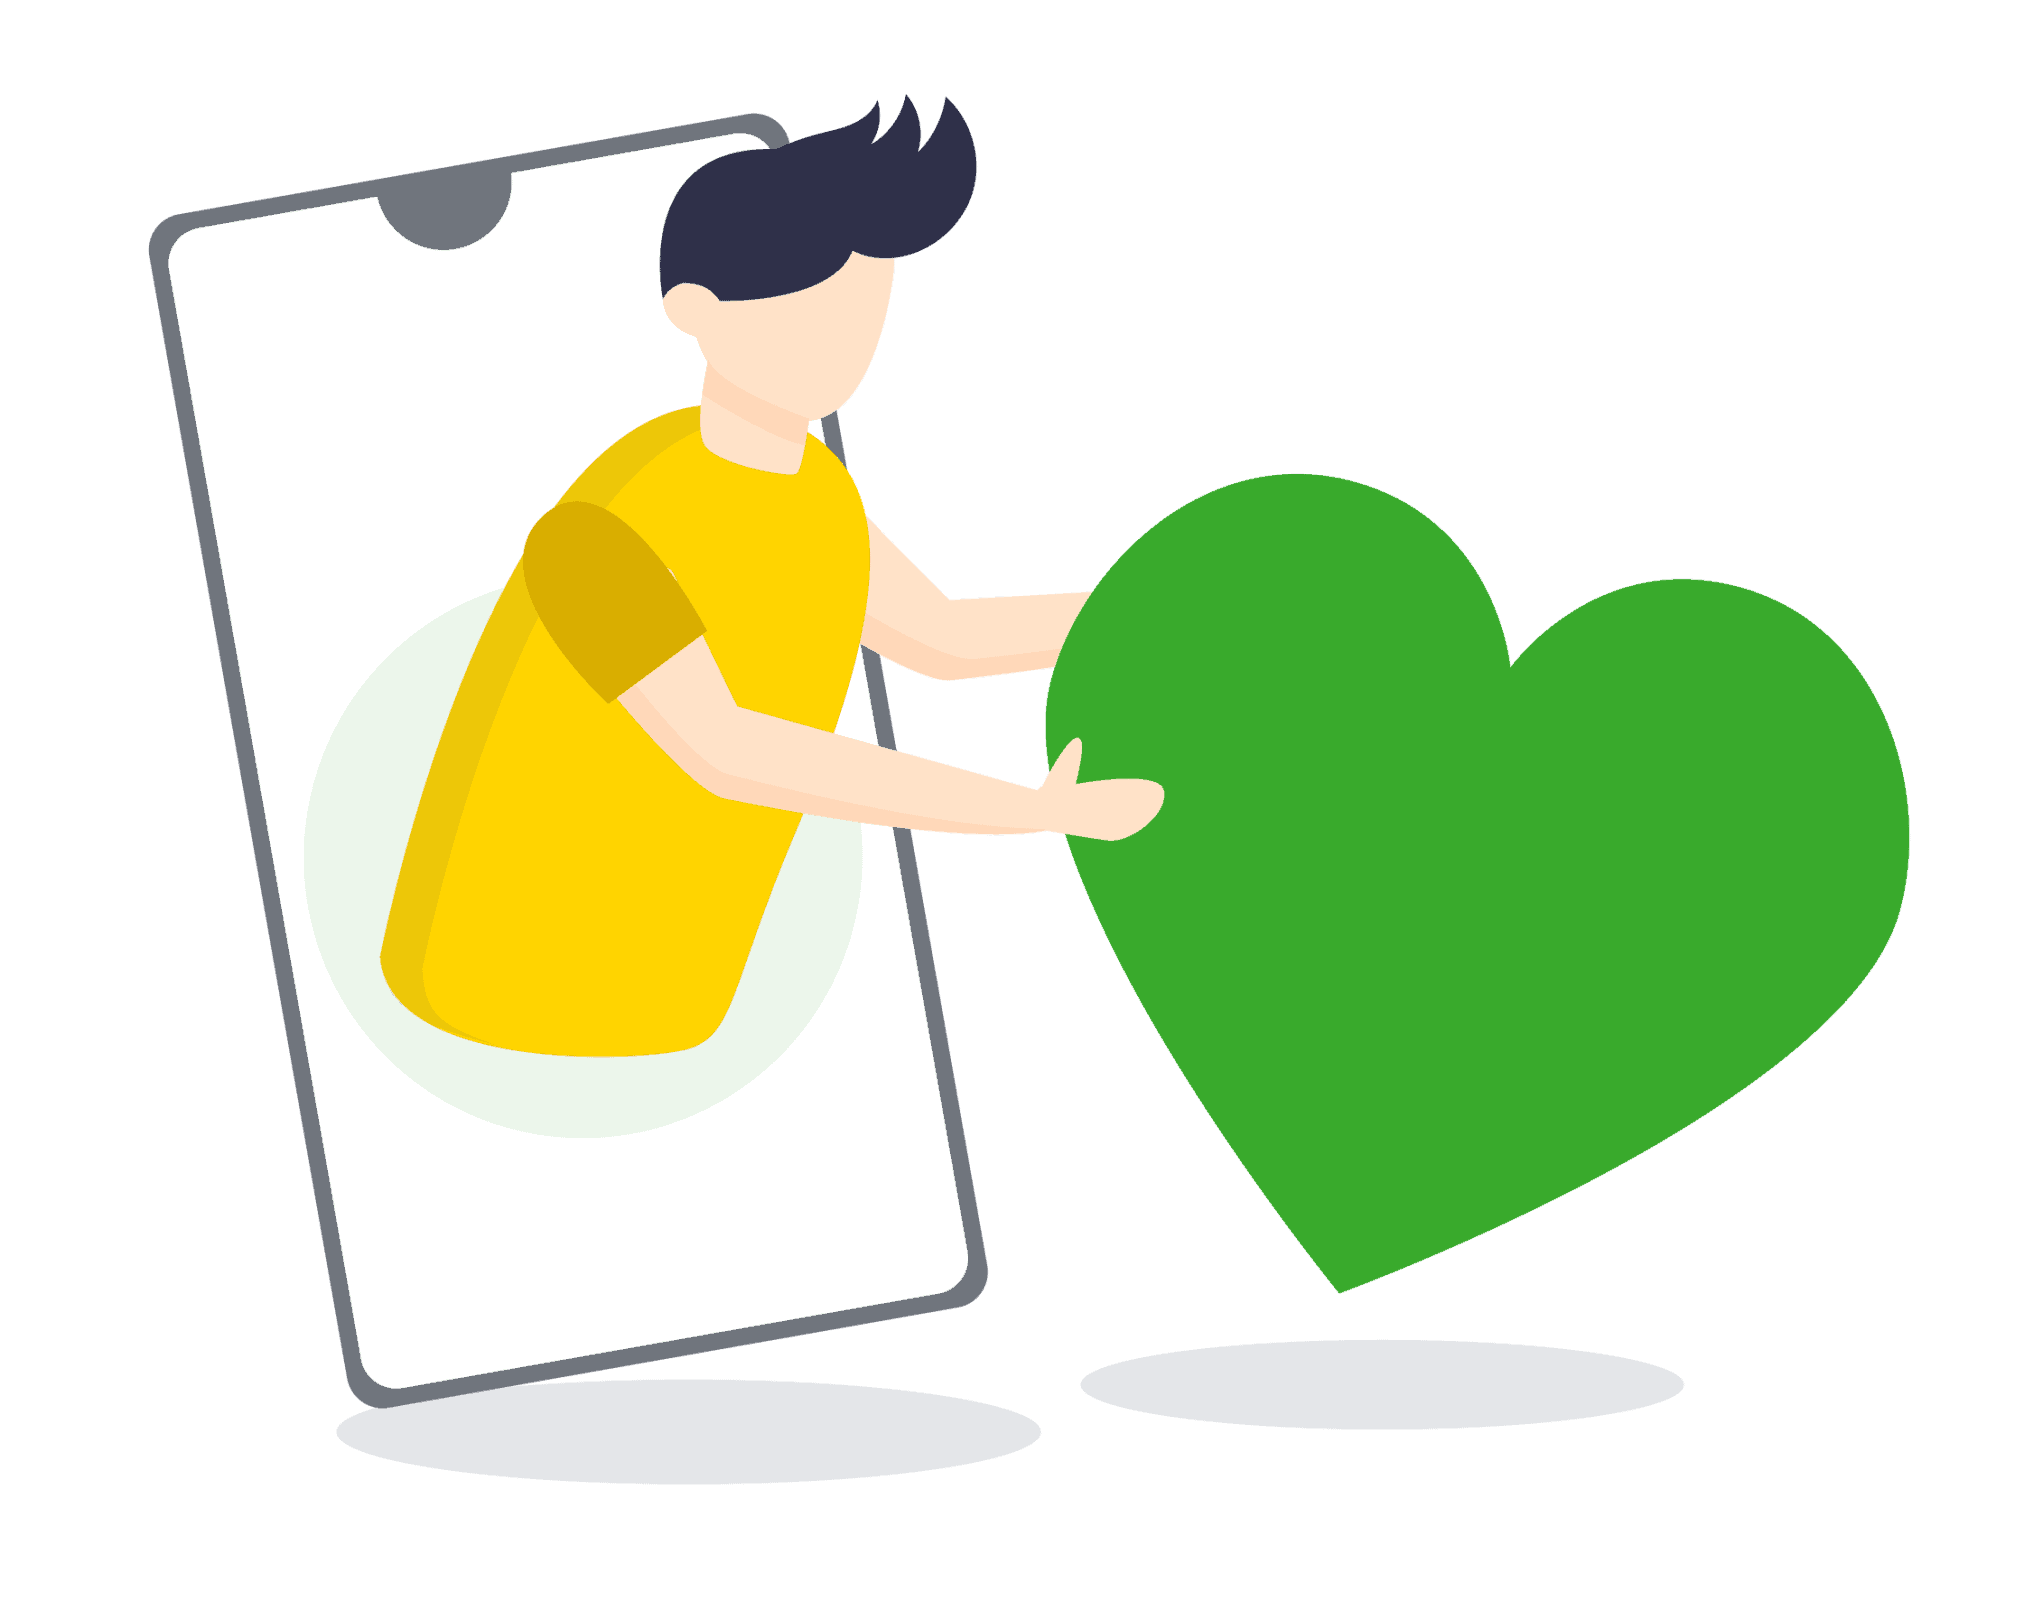 cartoon man coming out of phone with green heart